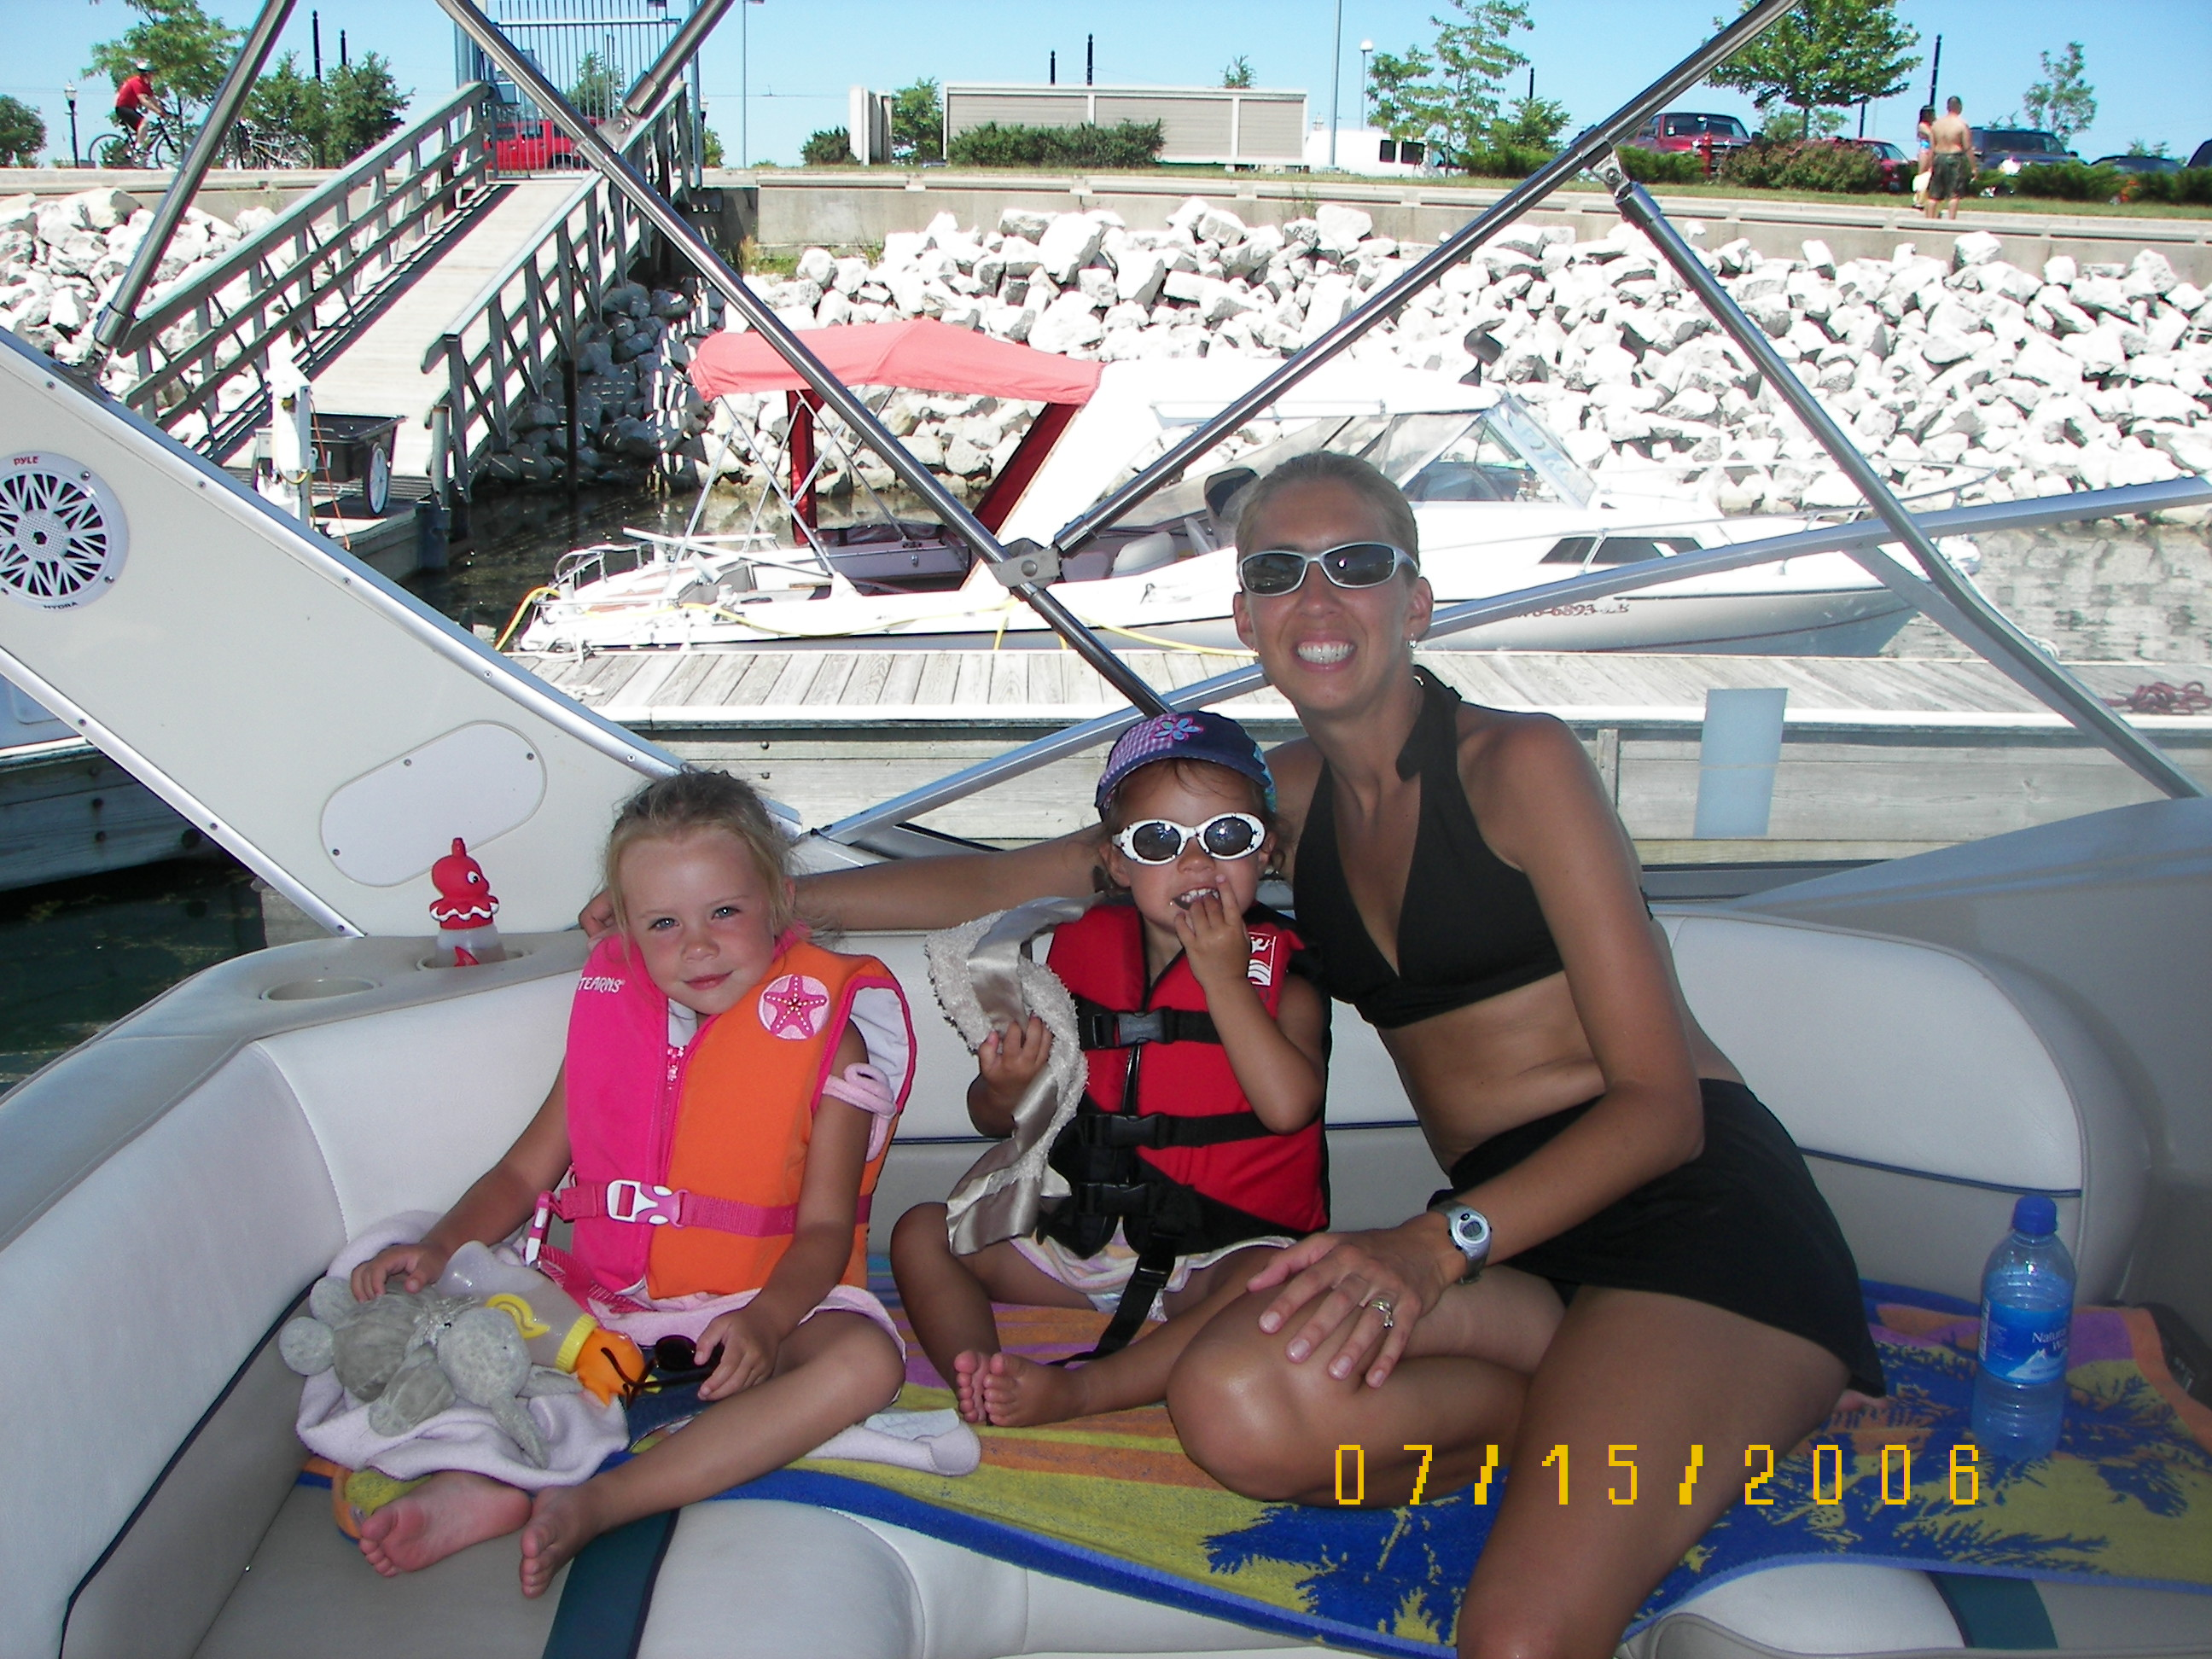 This was ellie Meg and tracy on the boat in Kenosha.